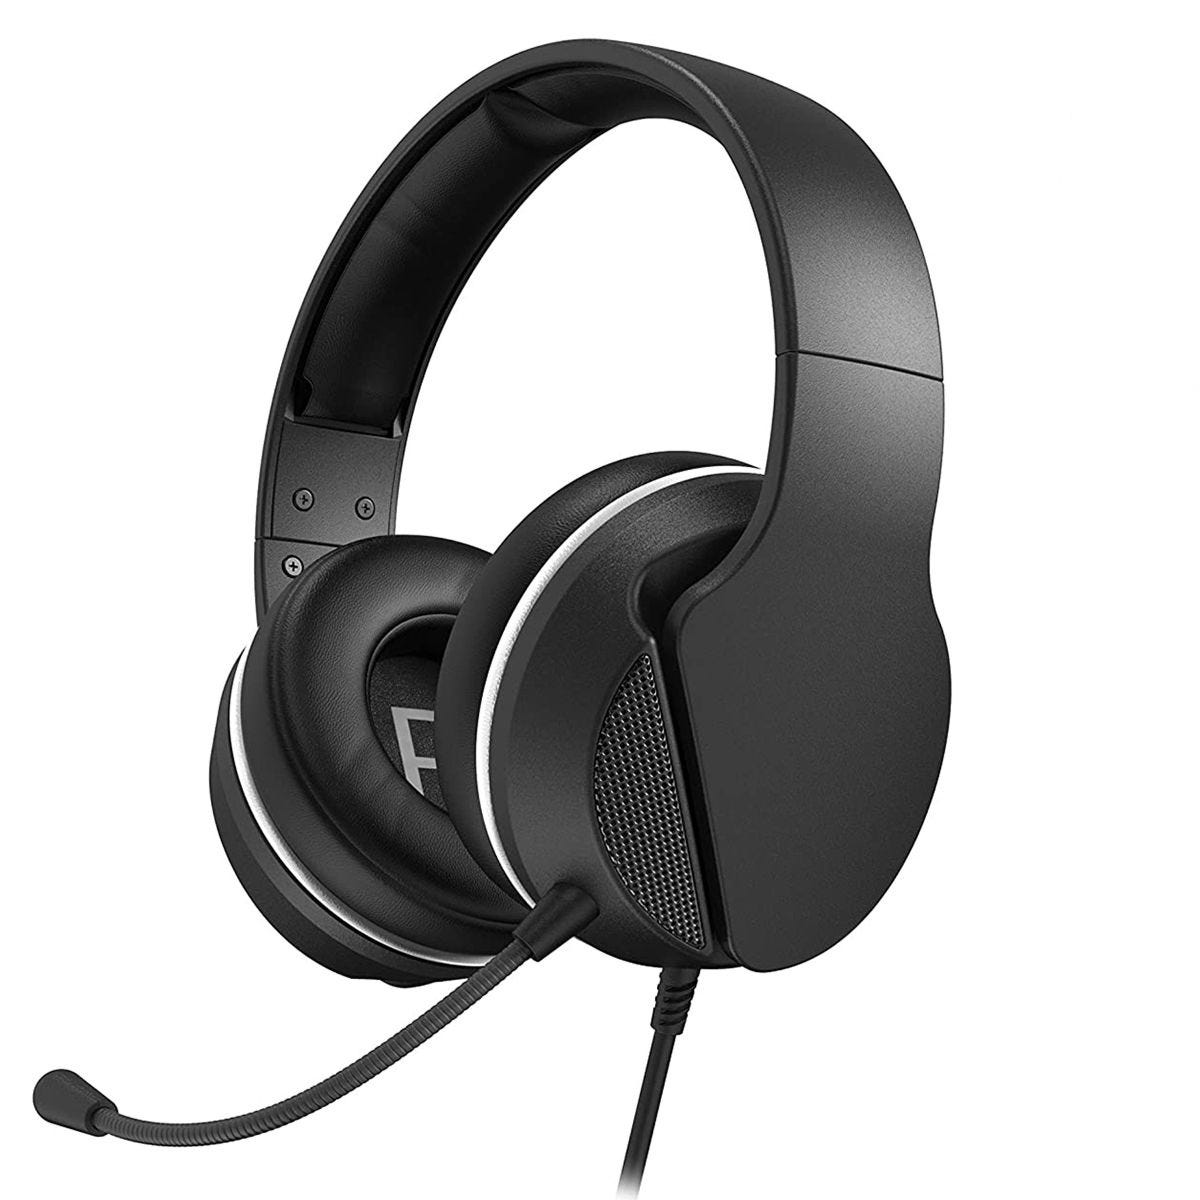 Subsonic Gaming Headset with Microphone for PS5 - Black